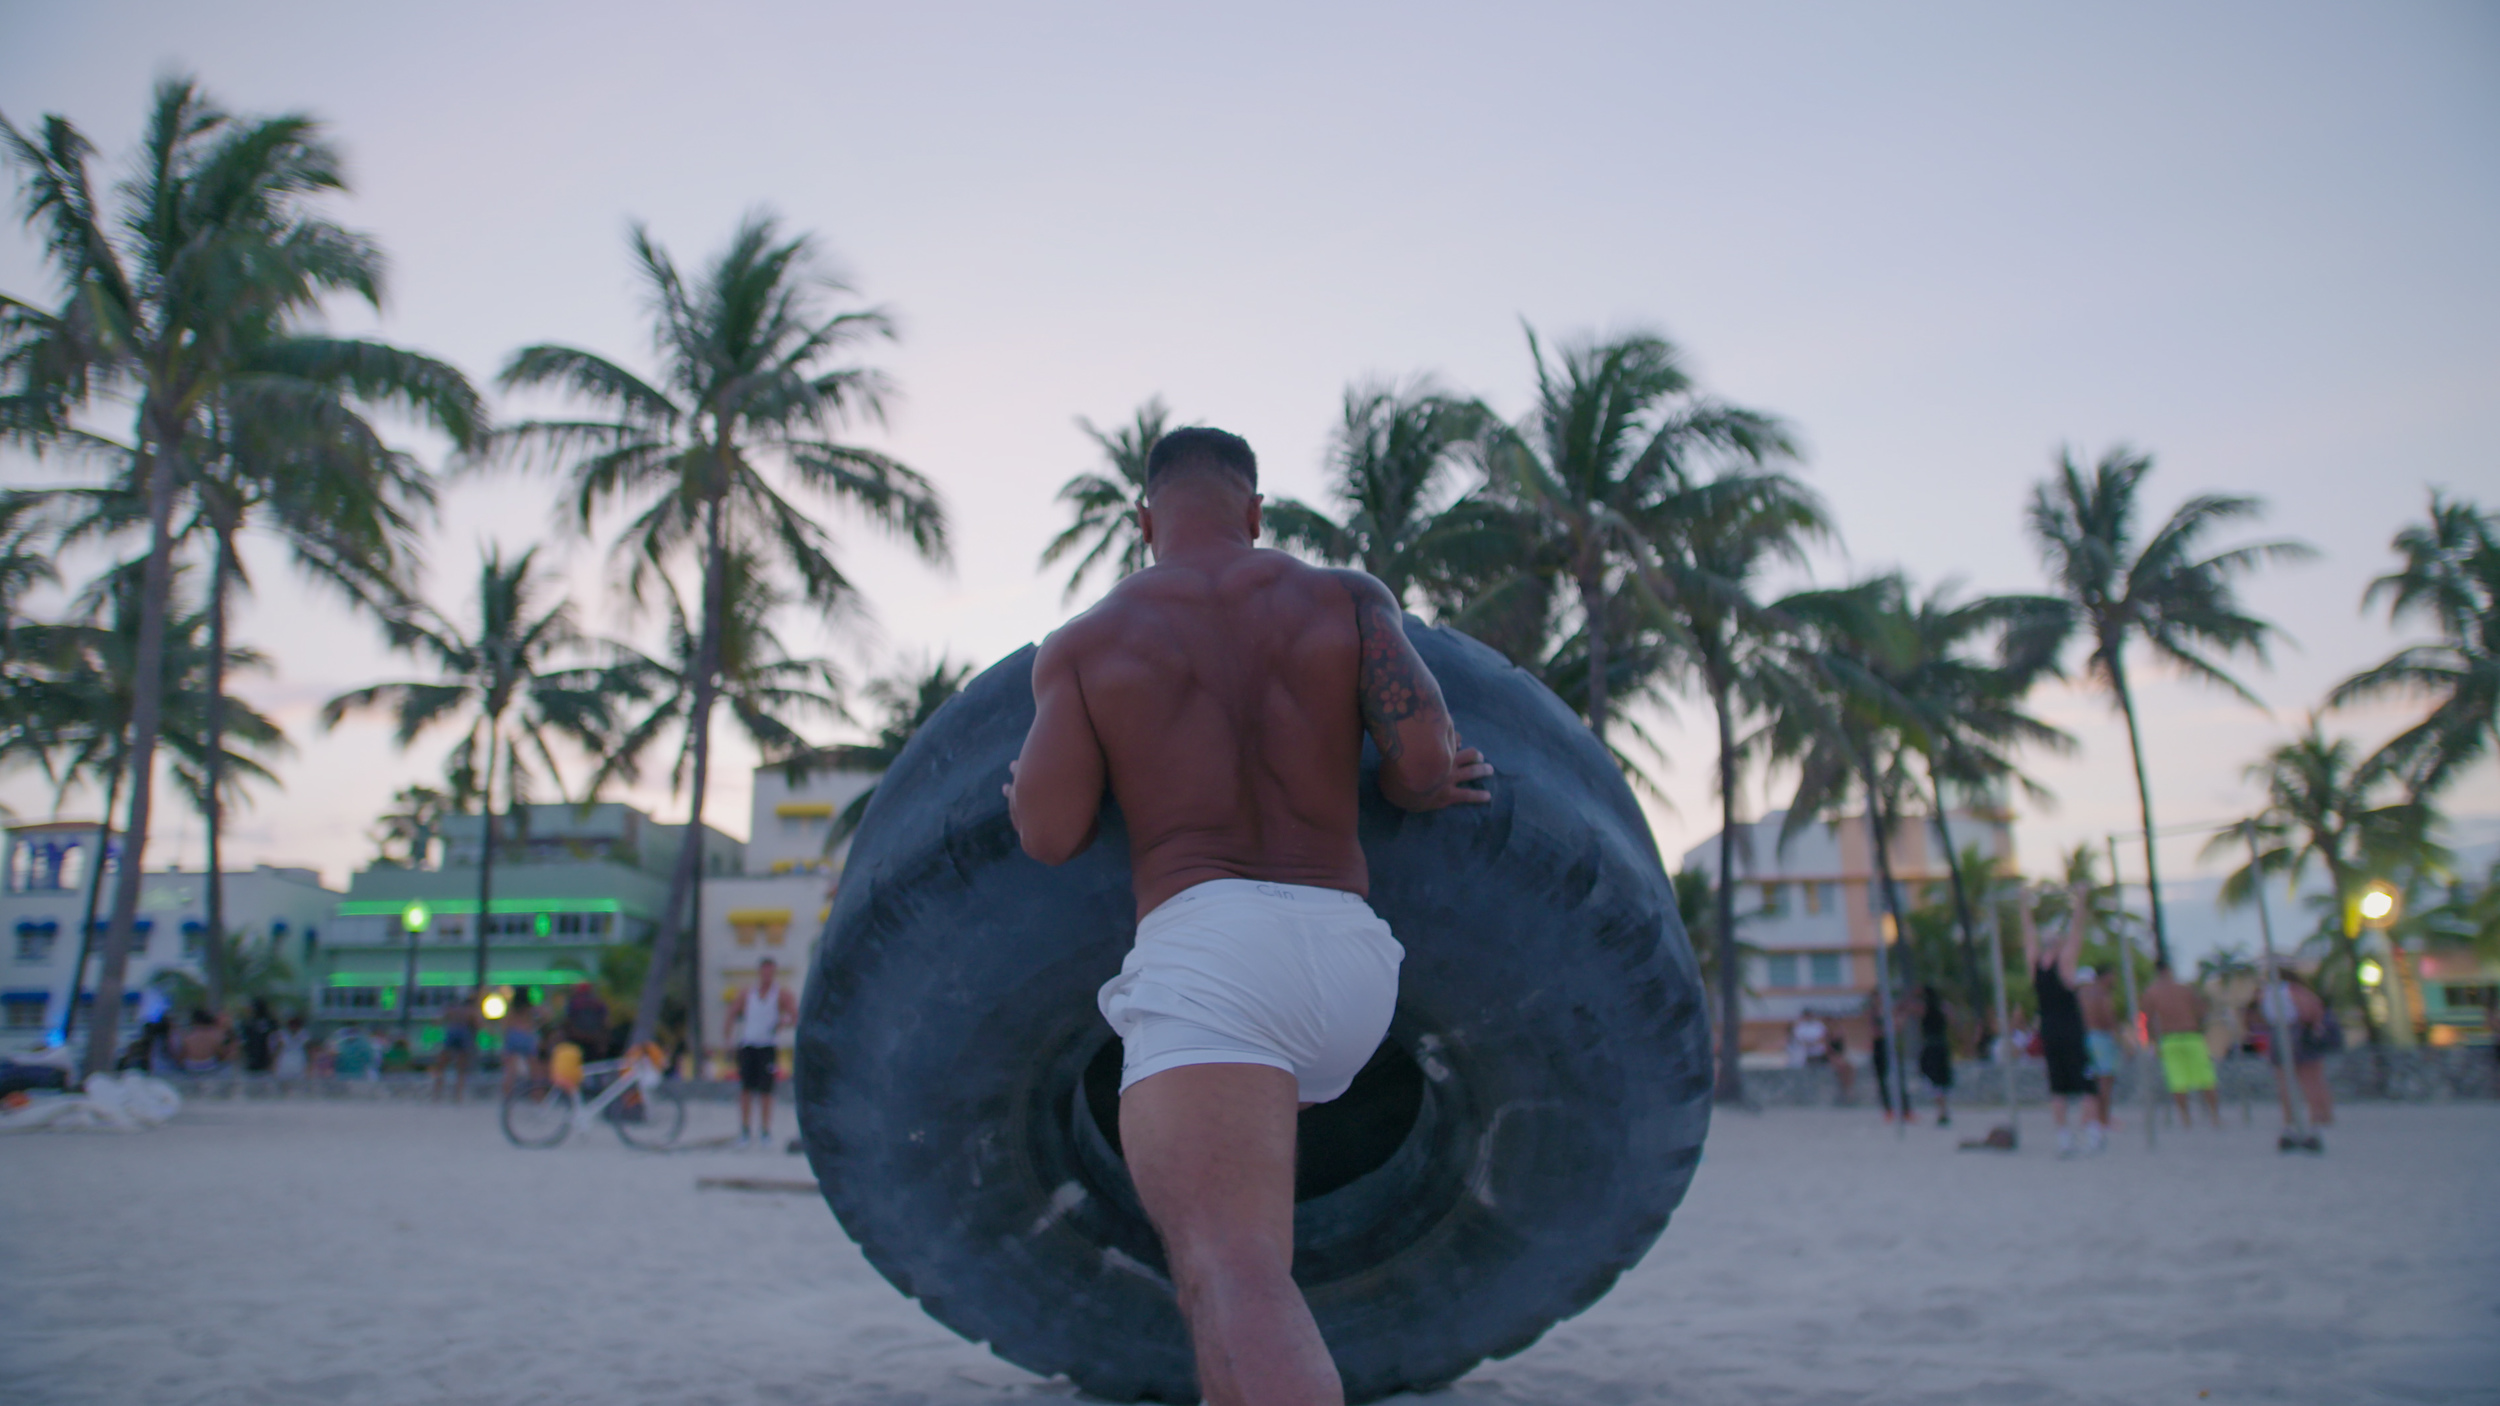 A local Miami Body Builder pushes a 800lb tire in a one short segment we filmed.